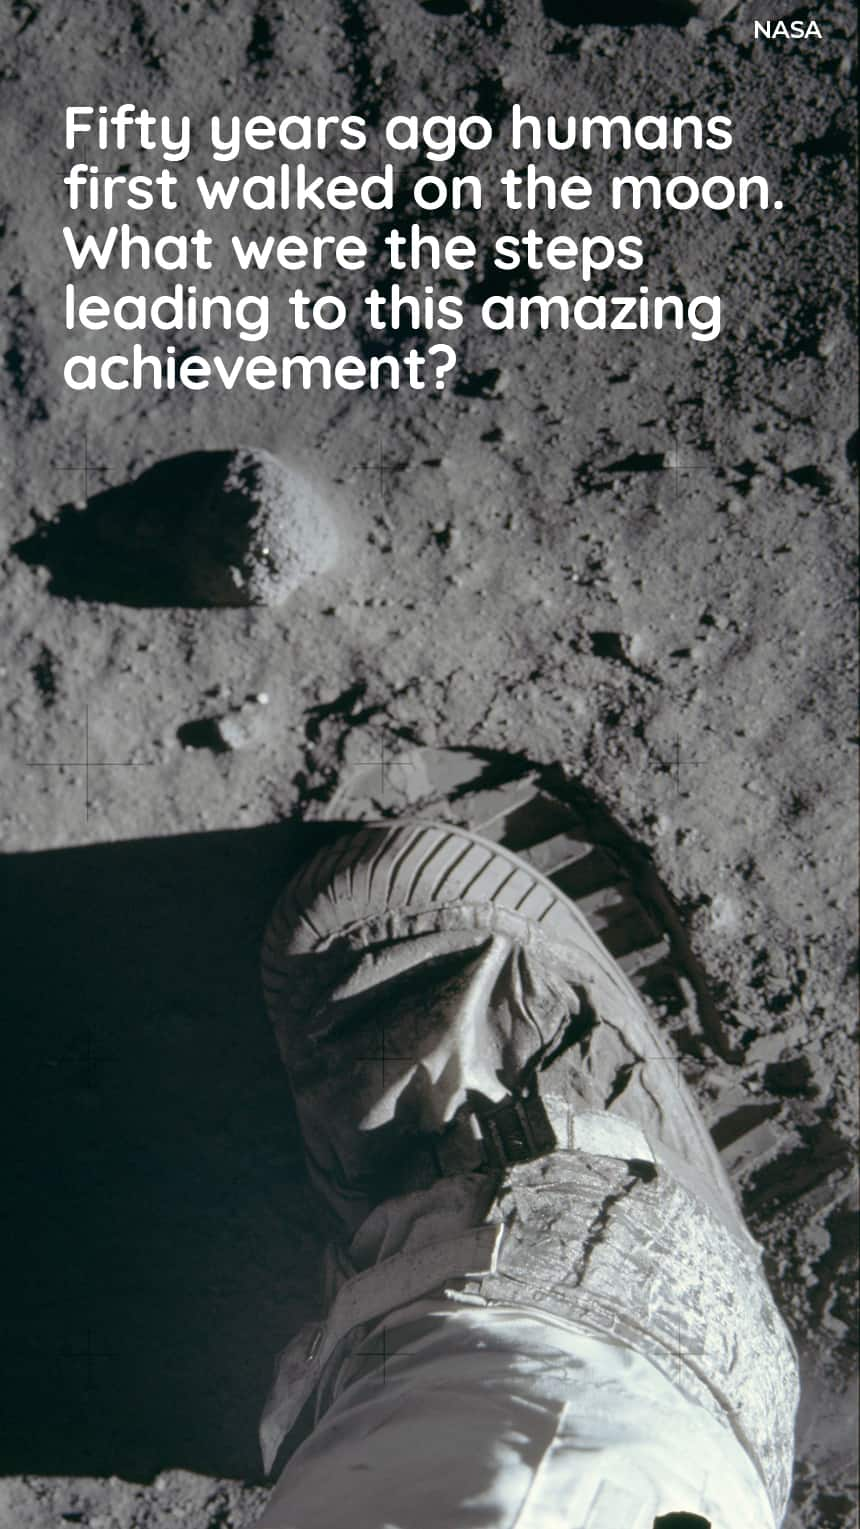 TEXT: Fifty years ago humans first walked on the moon. What were the steps leading to this amazing achievement? IMAGE: A space boot leaving an imprint on the moon's surface.